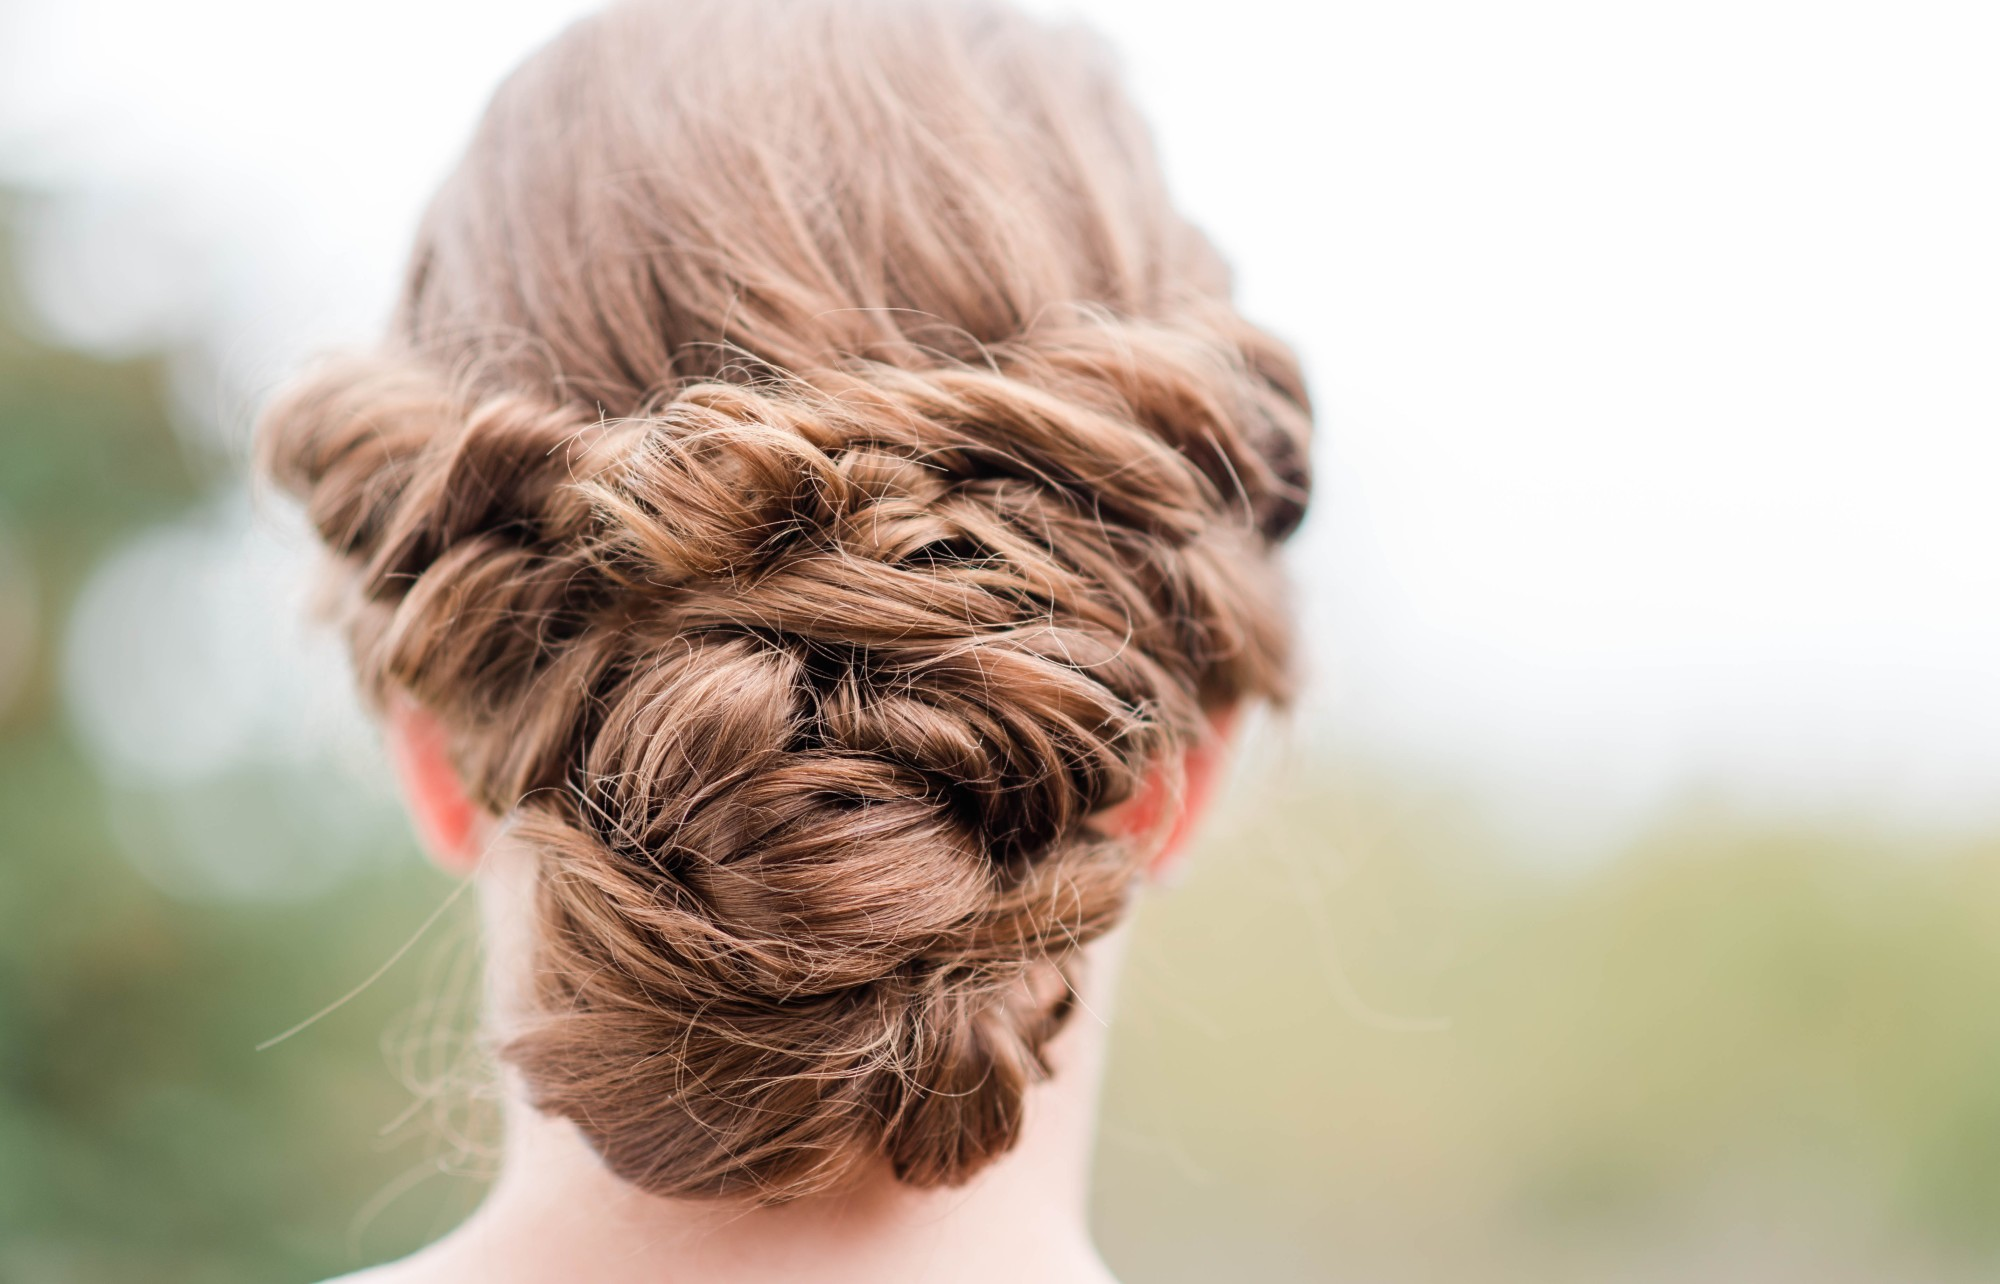 4 Braided Bridal Hairstyles for a Romantic Look